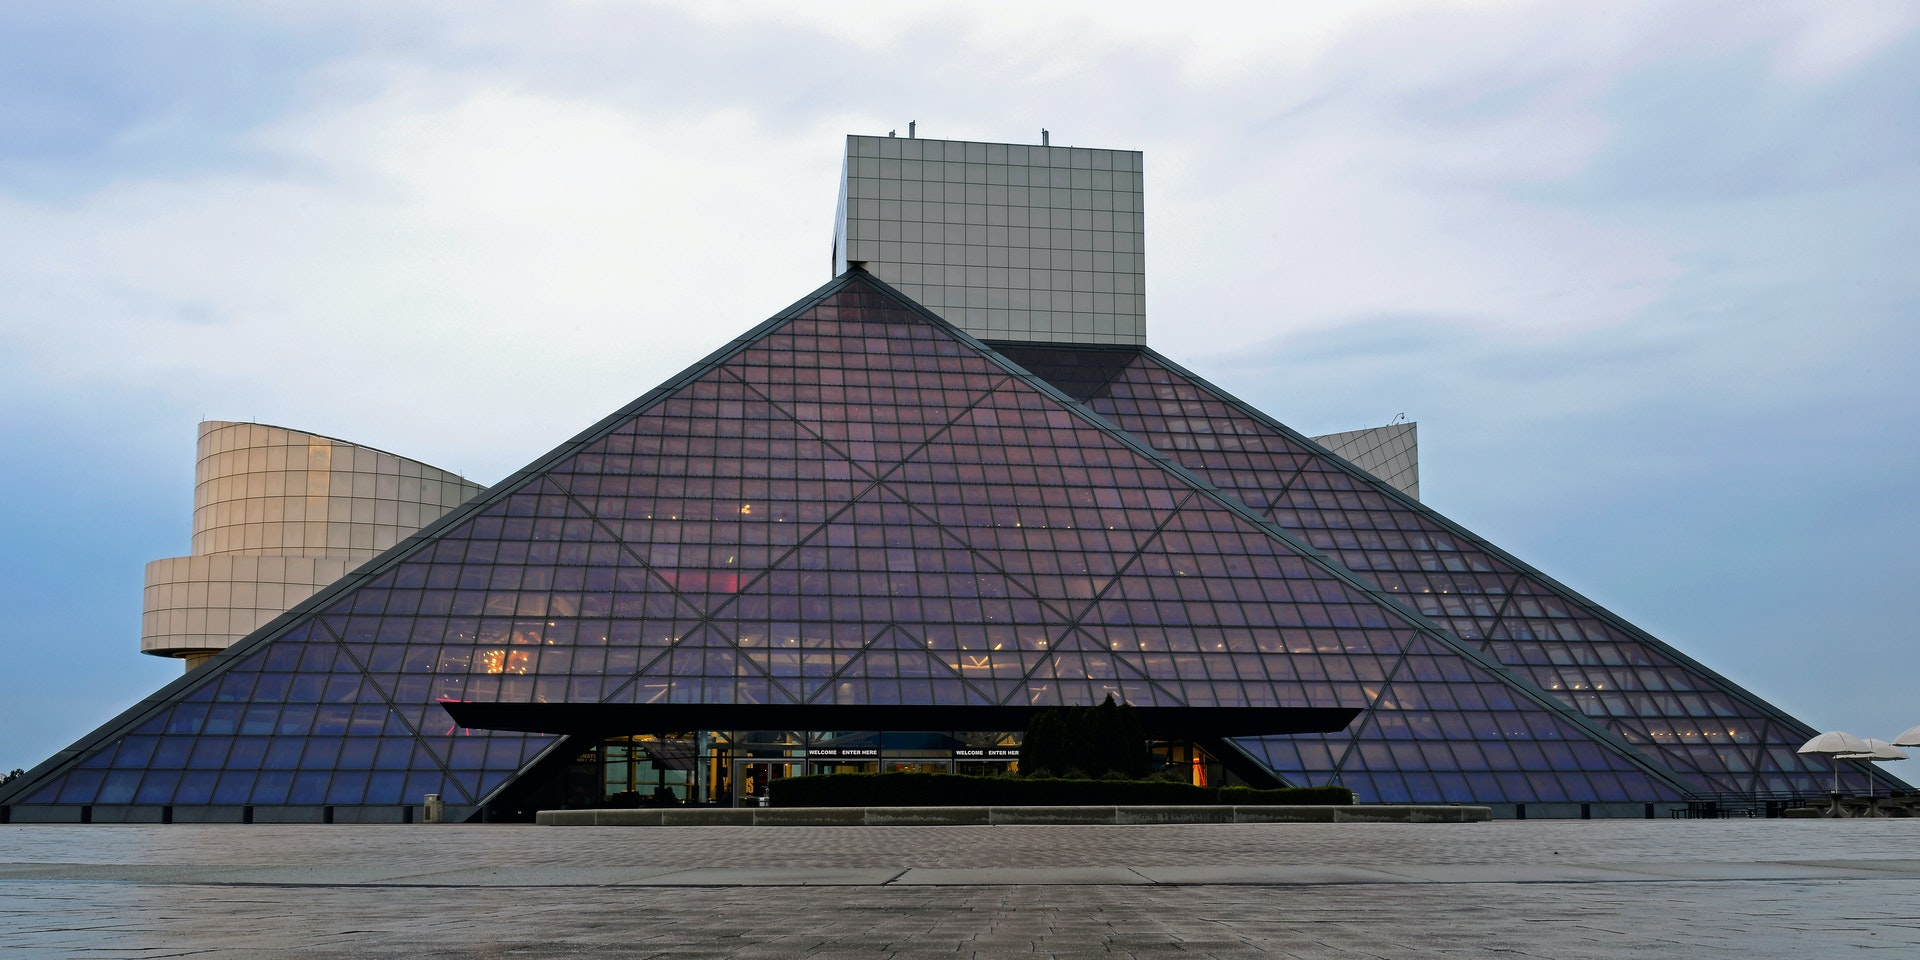 The pyramid at Paisley Park.